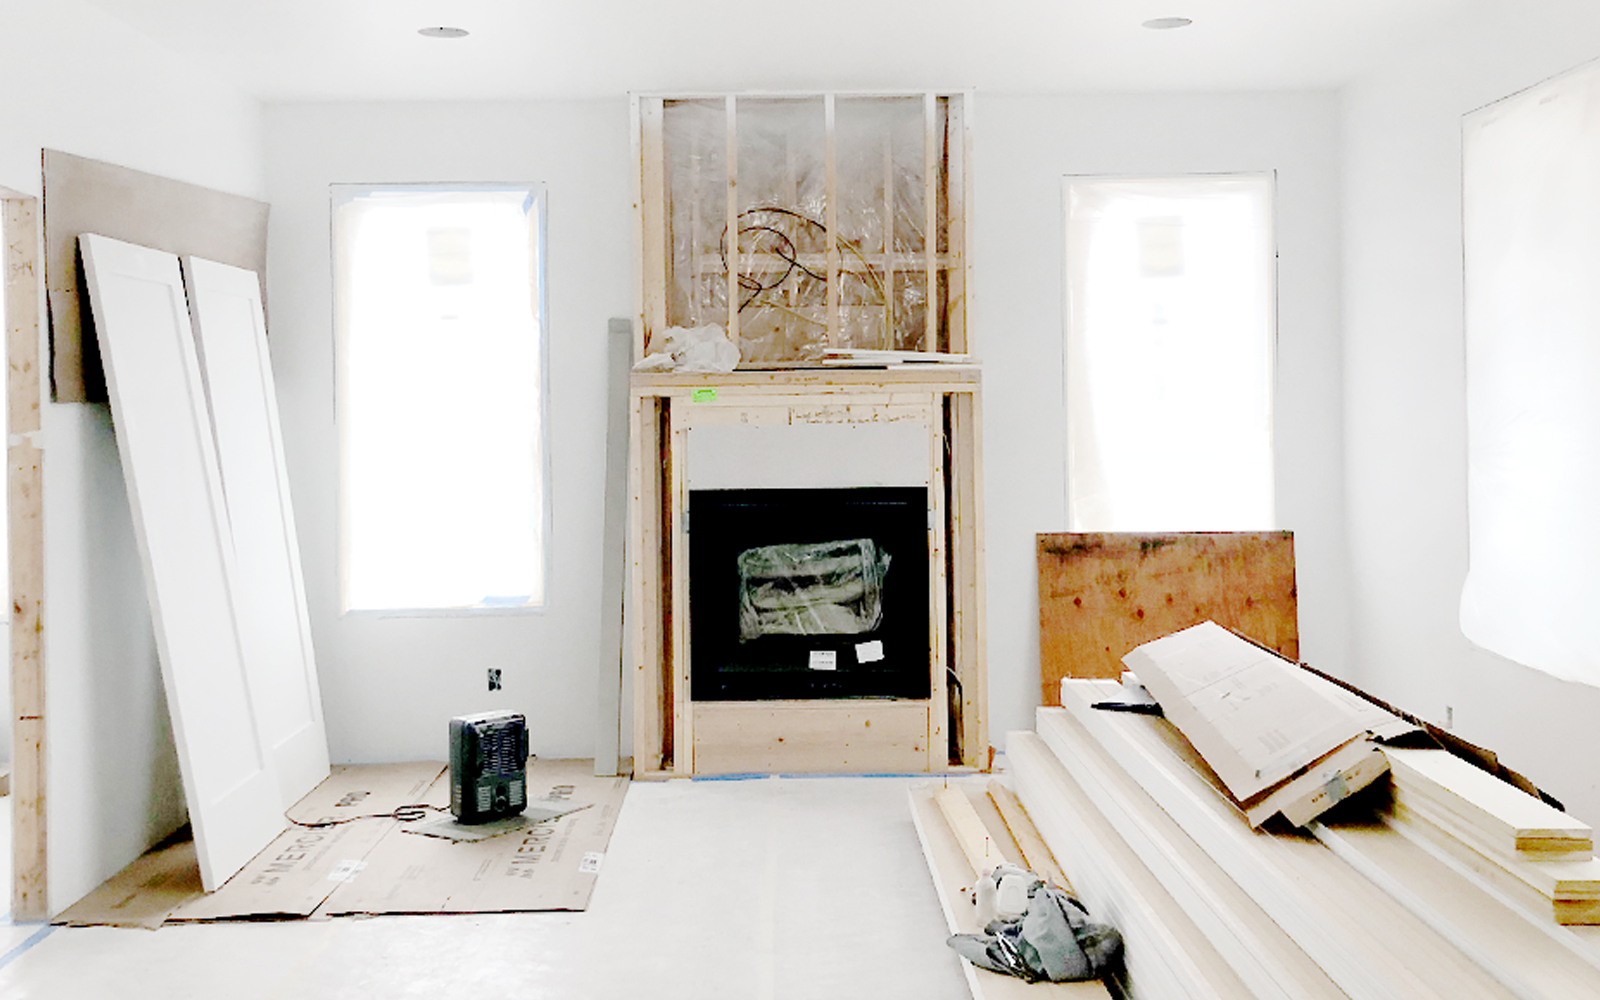 Tips for Building a Home from Megan Gilger of The Fresh Exchange